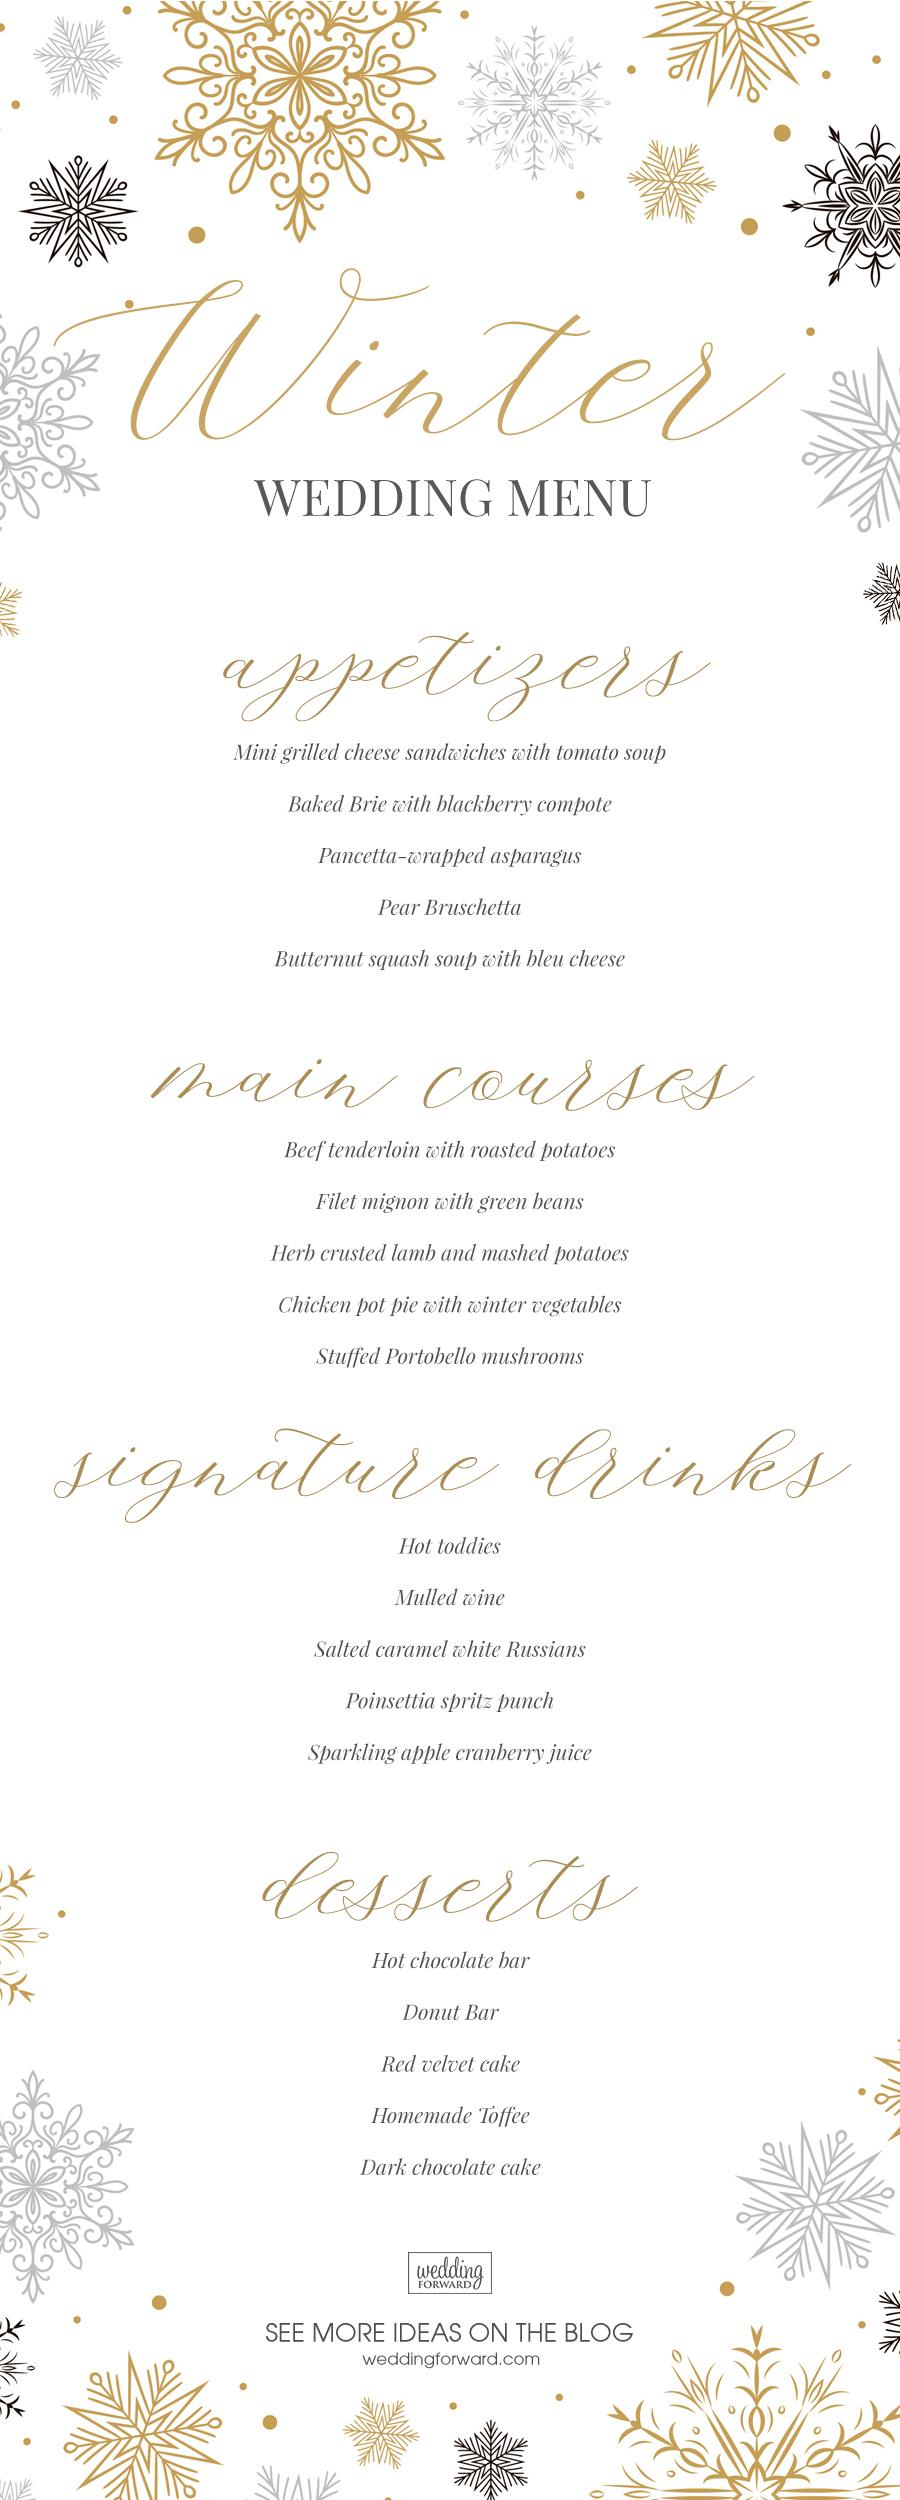 Top Wedding Menu Ideas In 2020 And Tips Wedding Forward